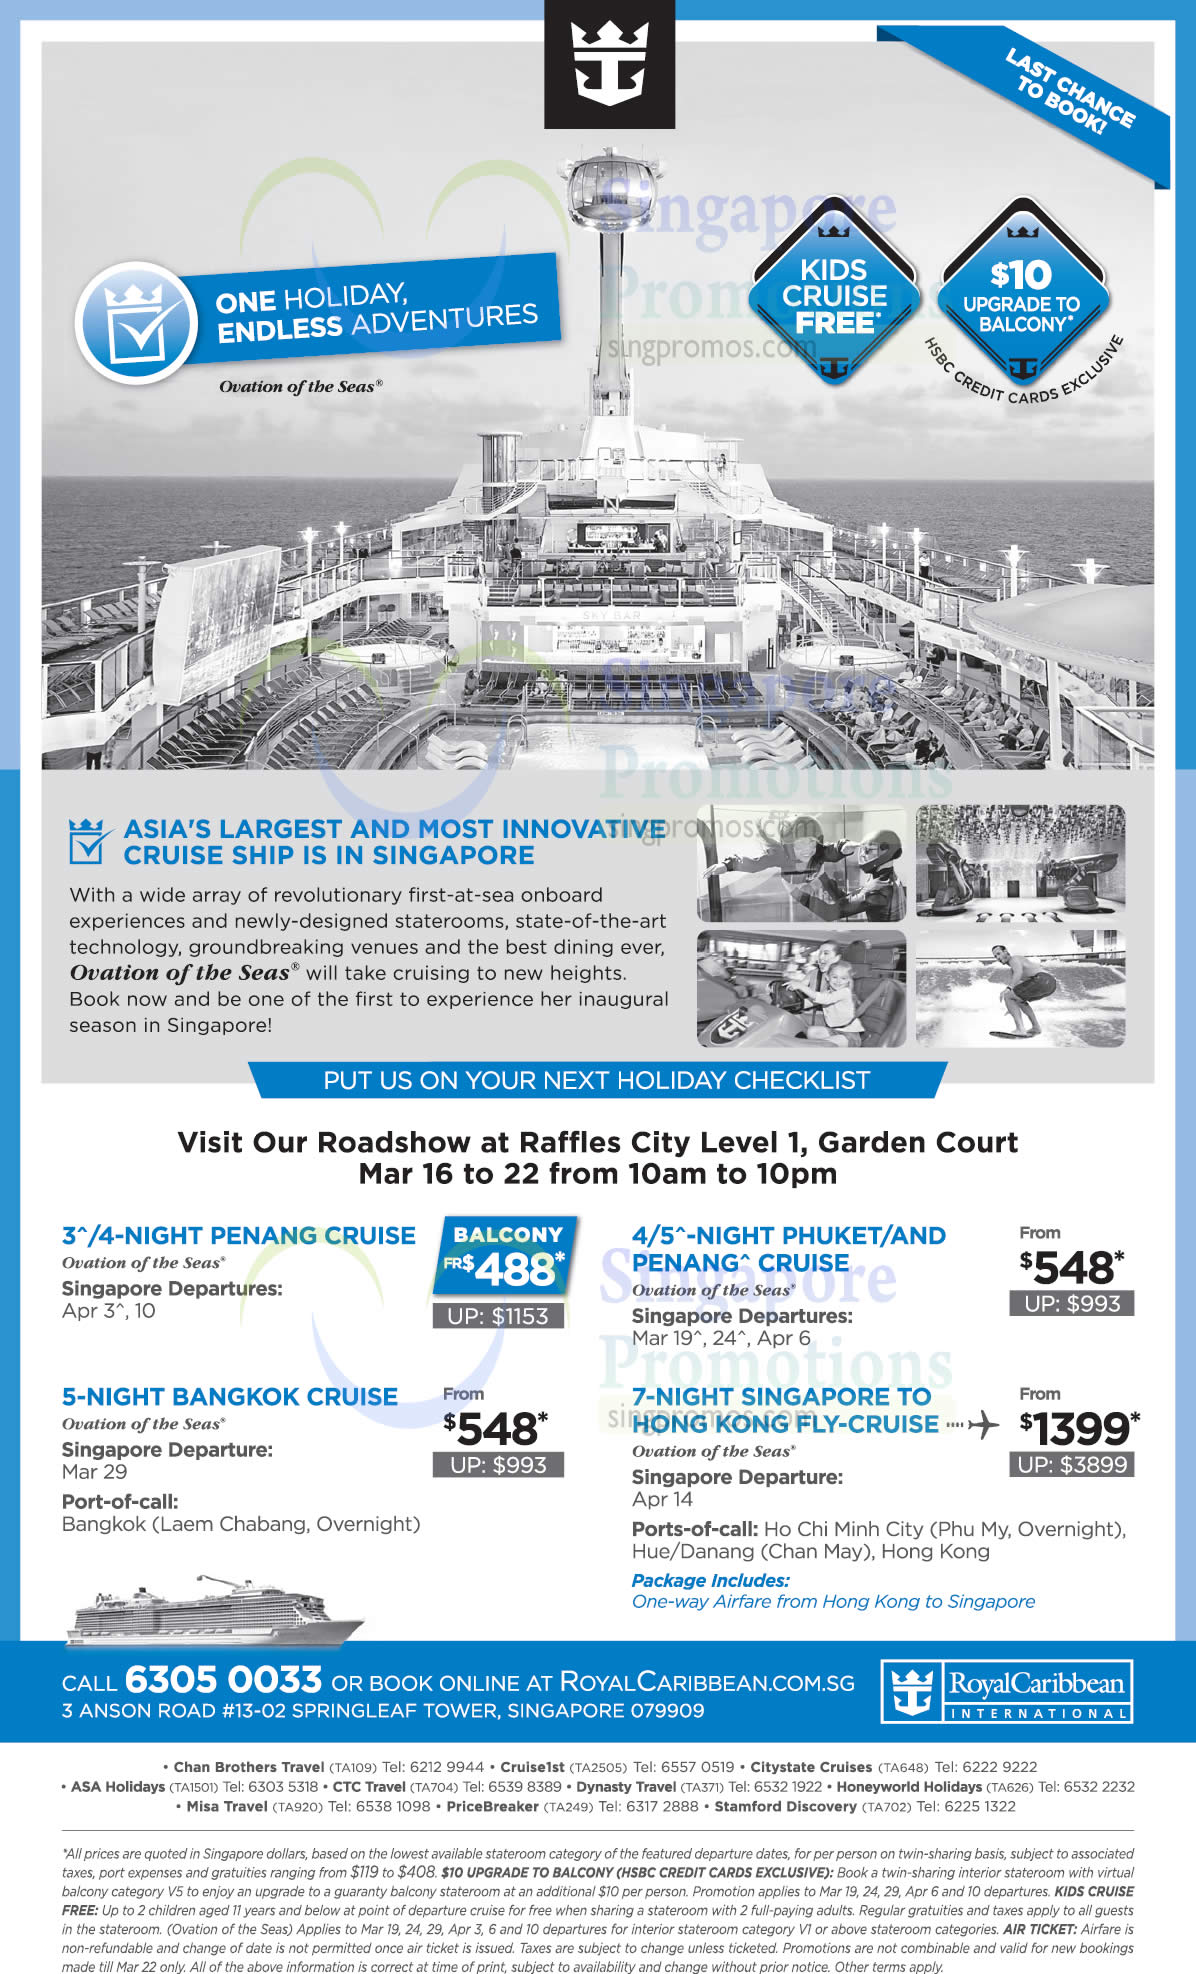 Royal Caribbean Roadshow At Raffles City Cruise From 488 From 16  22 Mar